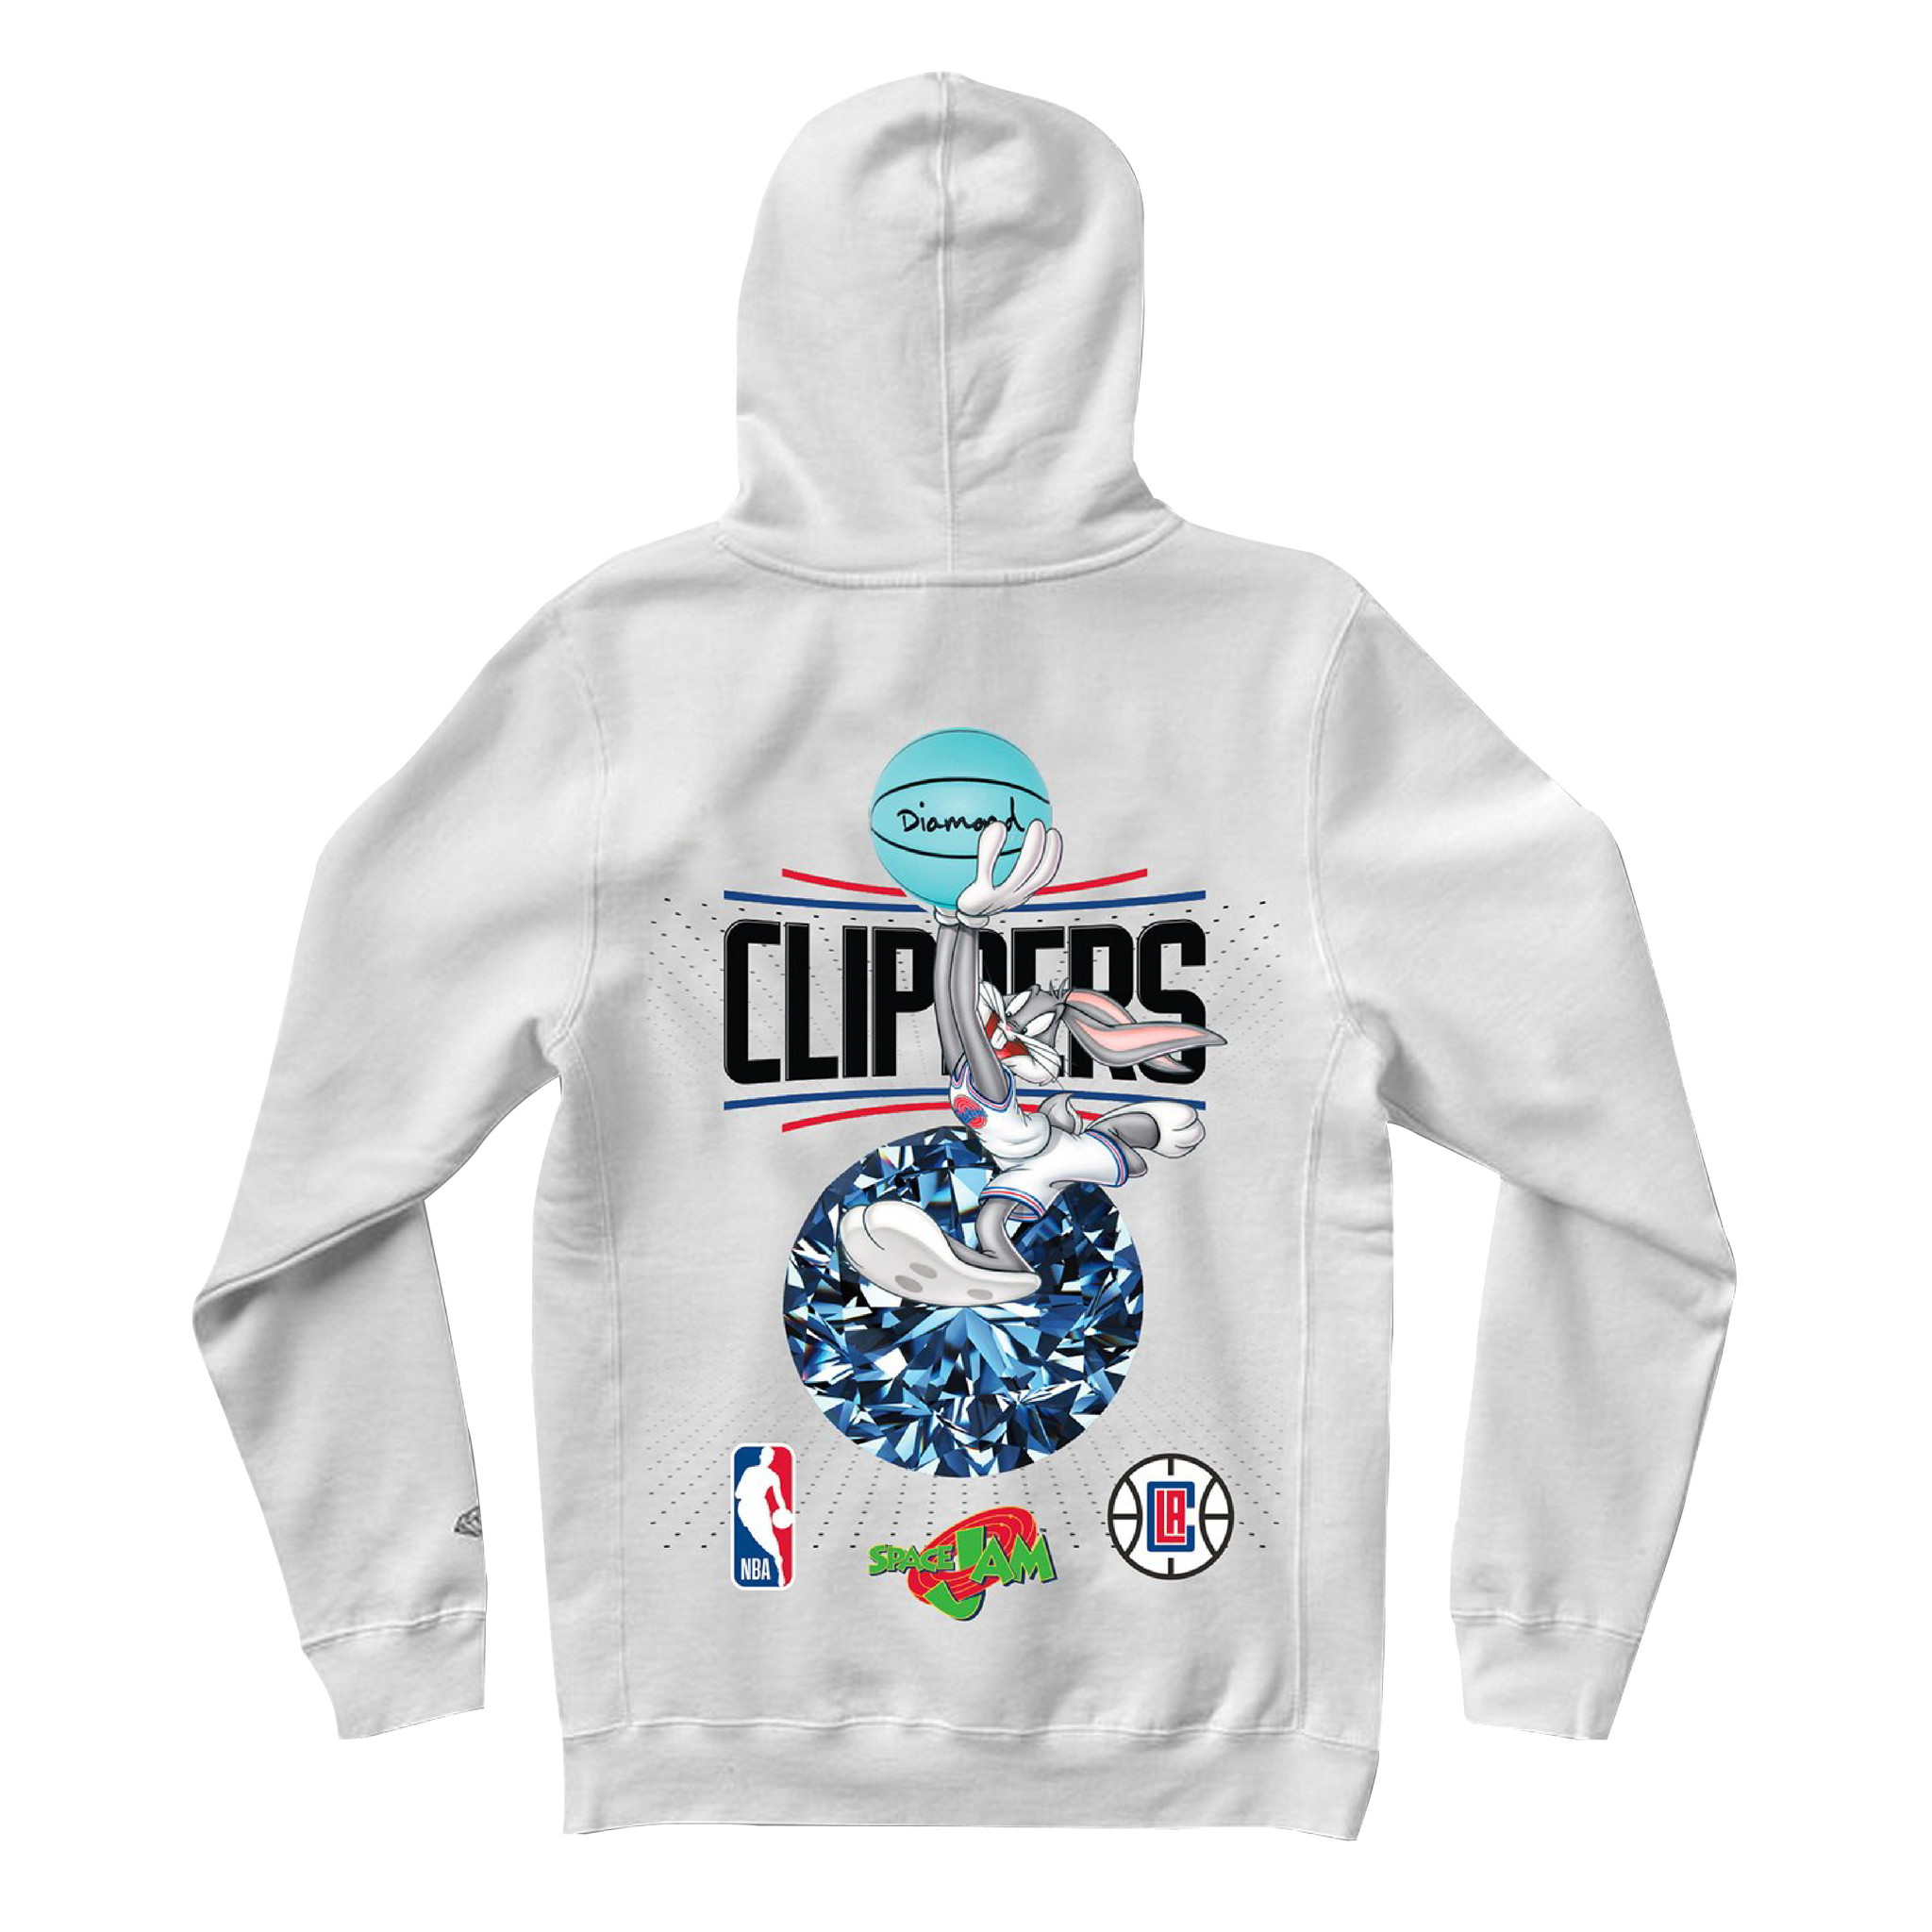 DIAMOND x SPACE JAM x CLIPPERS HOODIE